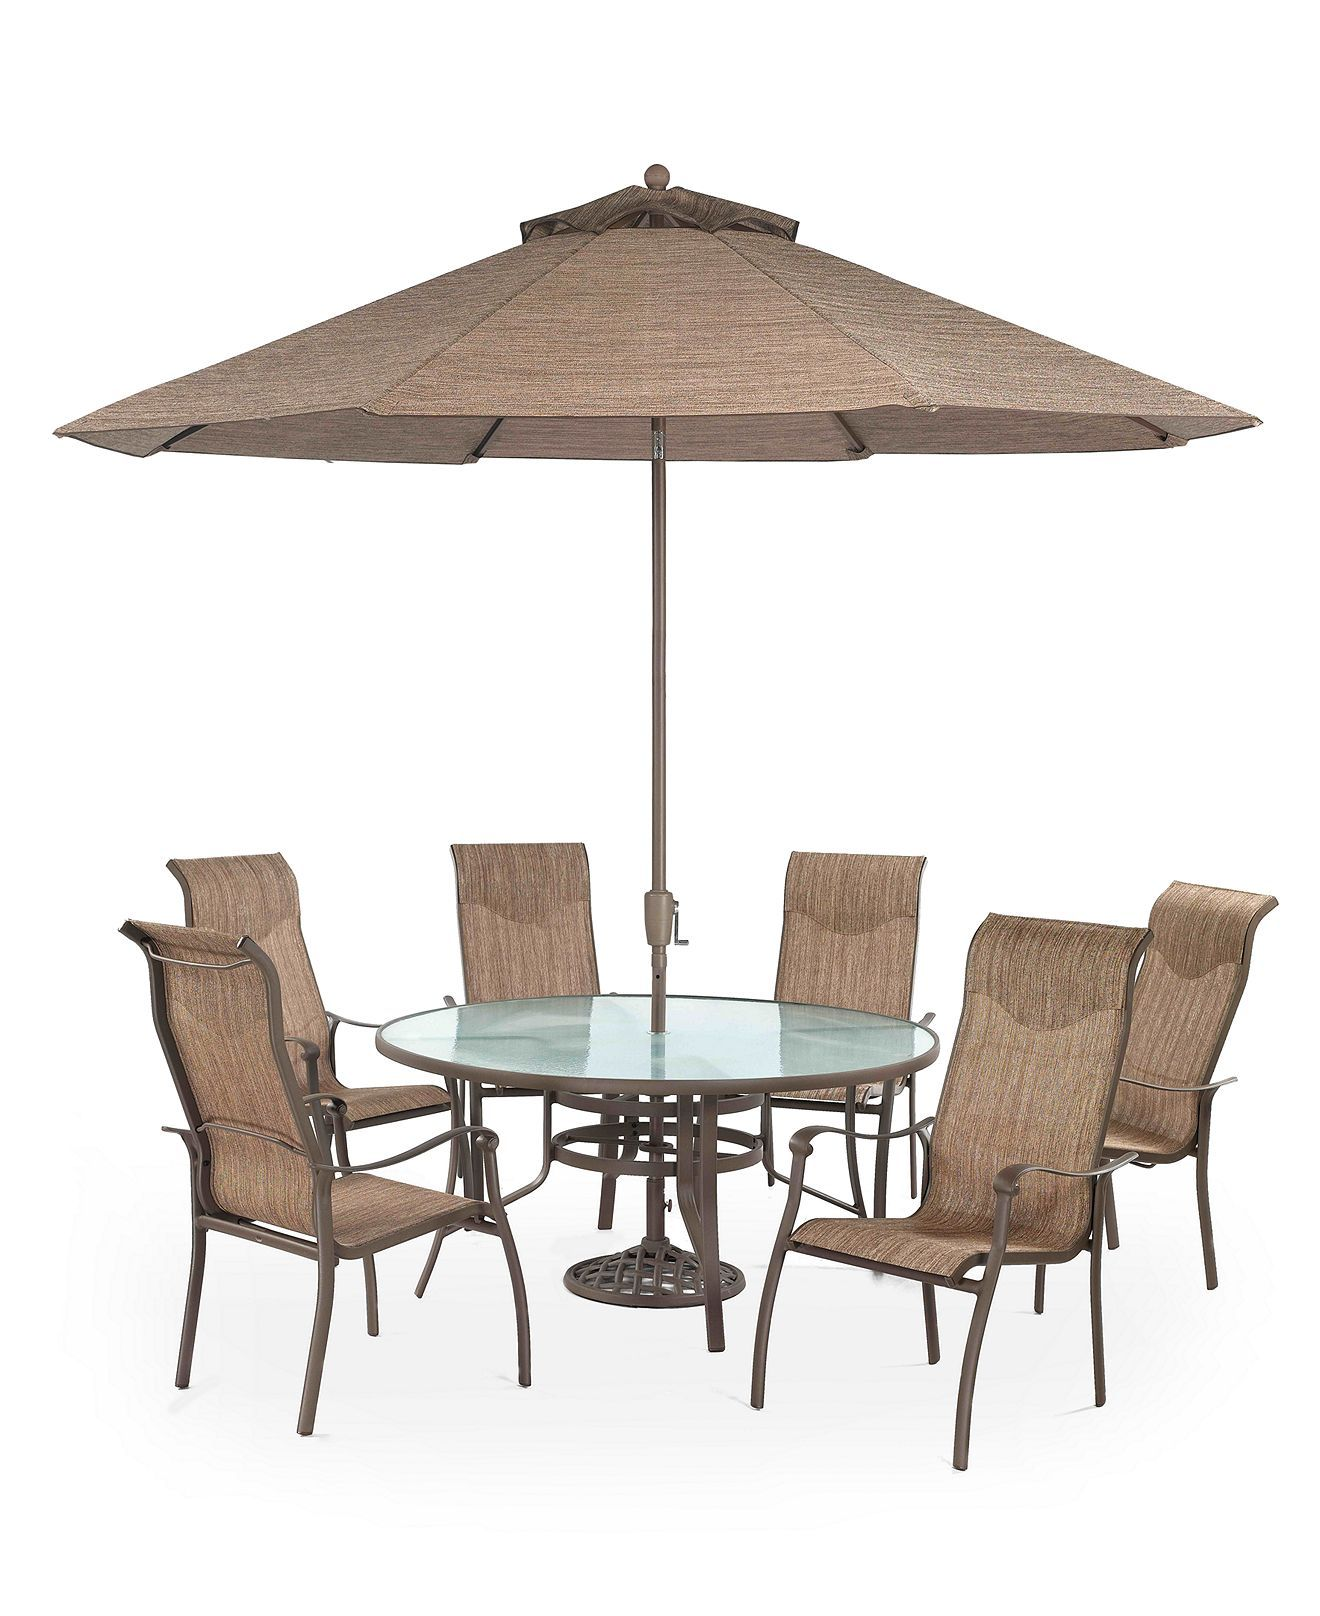 Oasis Outdoor Patio Furniture 7 Piece Set 60 Round Dining Table